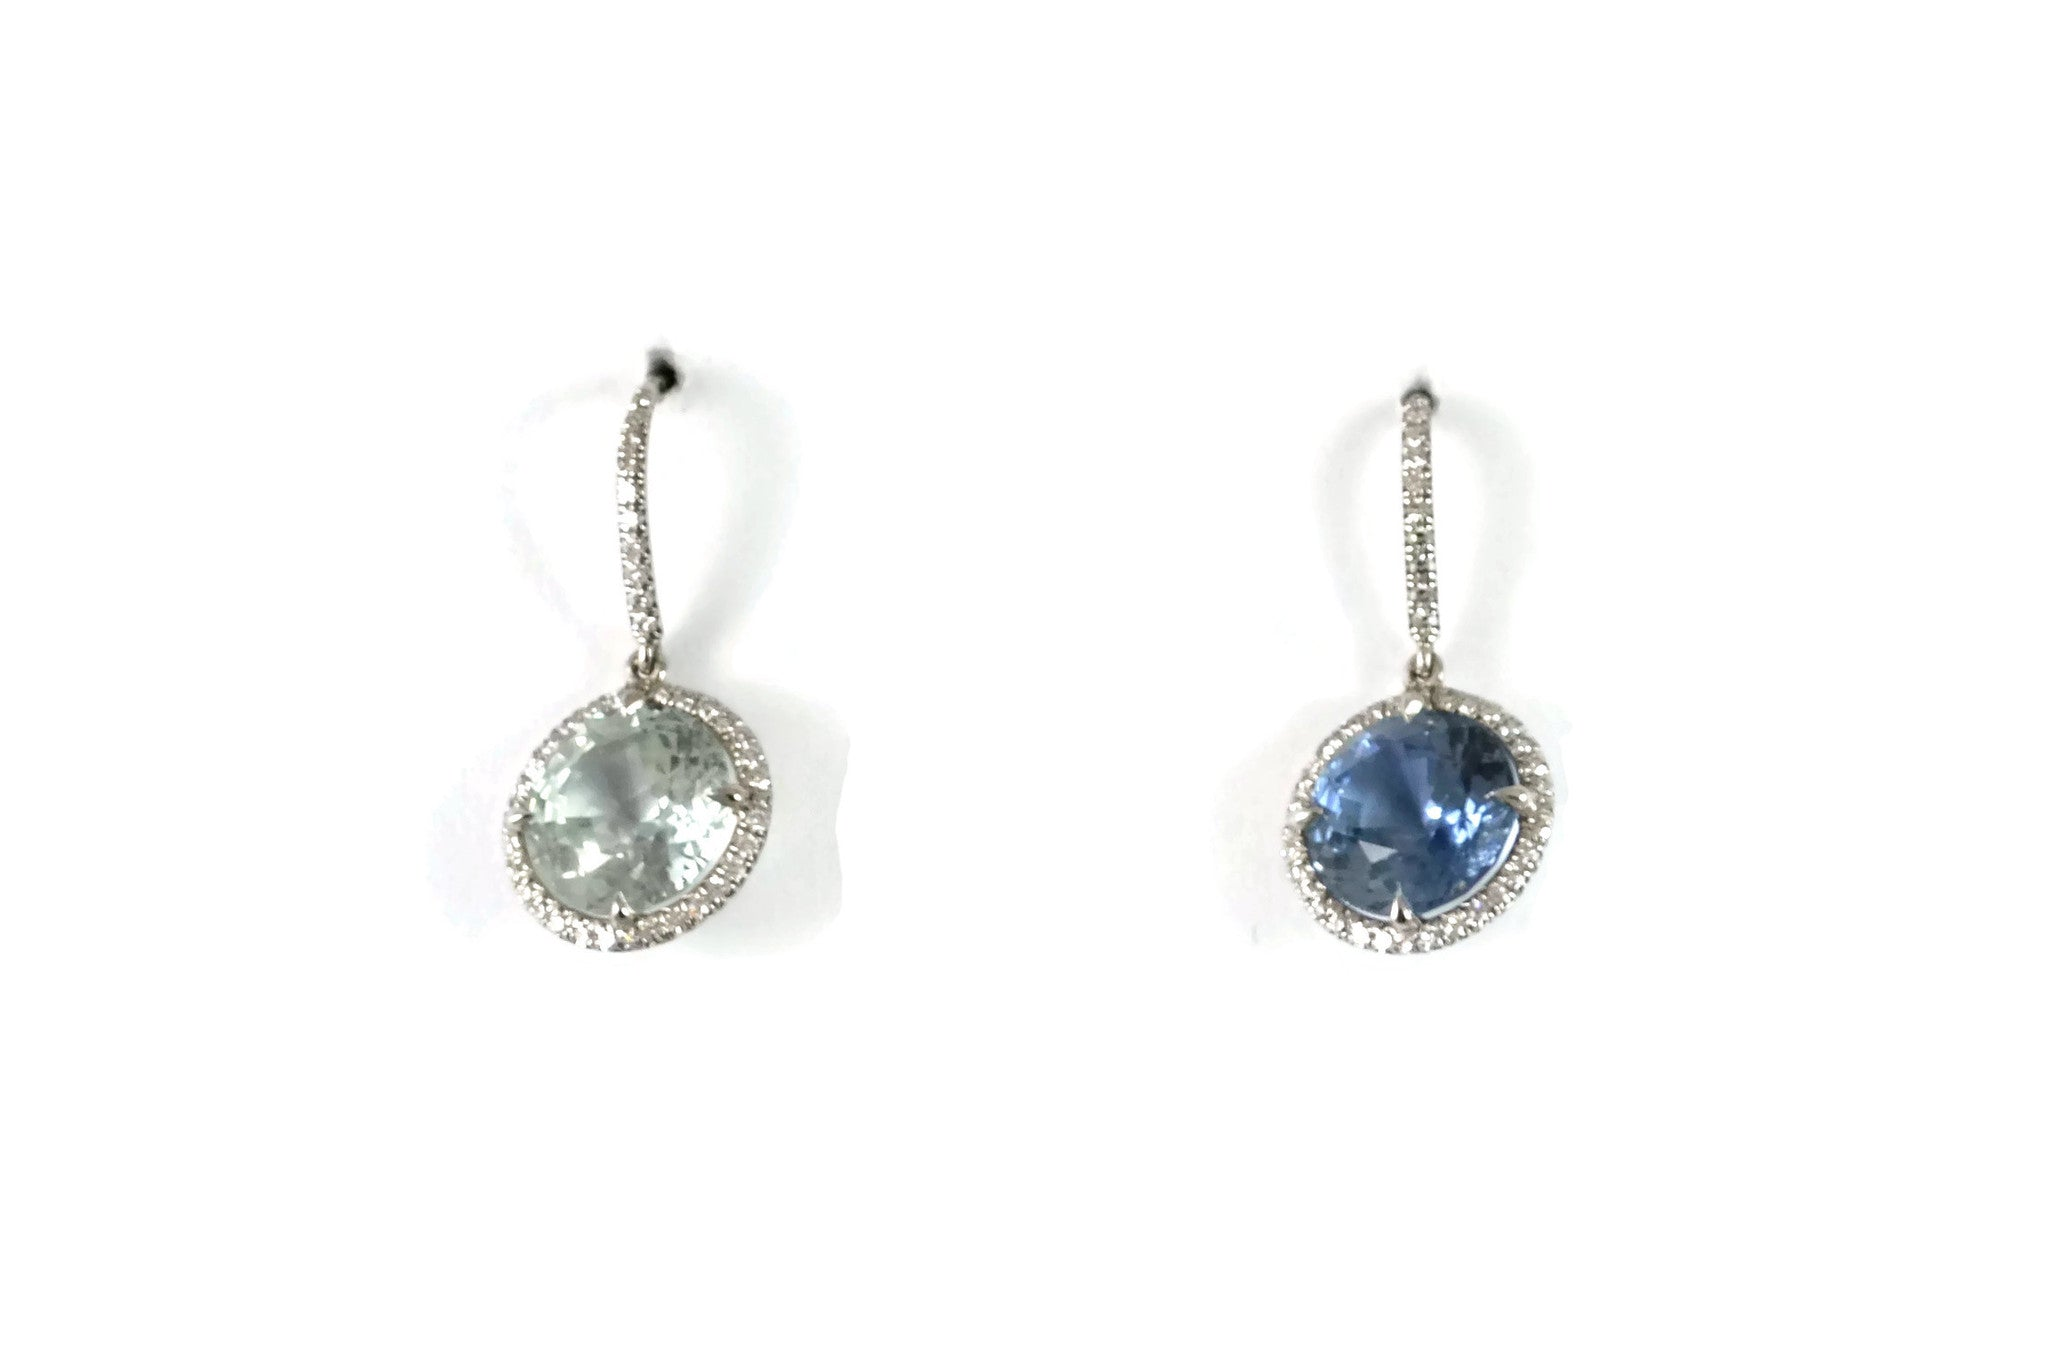 Eclat Drop Earrings with Natural Mismatched Sapphires and Diamonds, 18k White Gold.